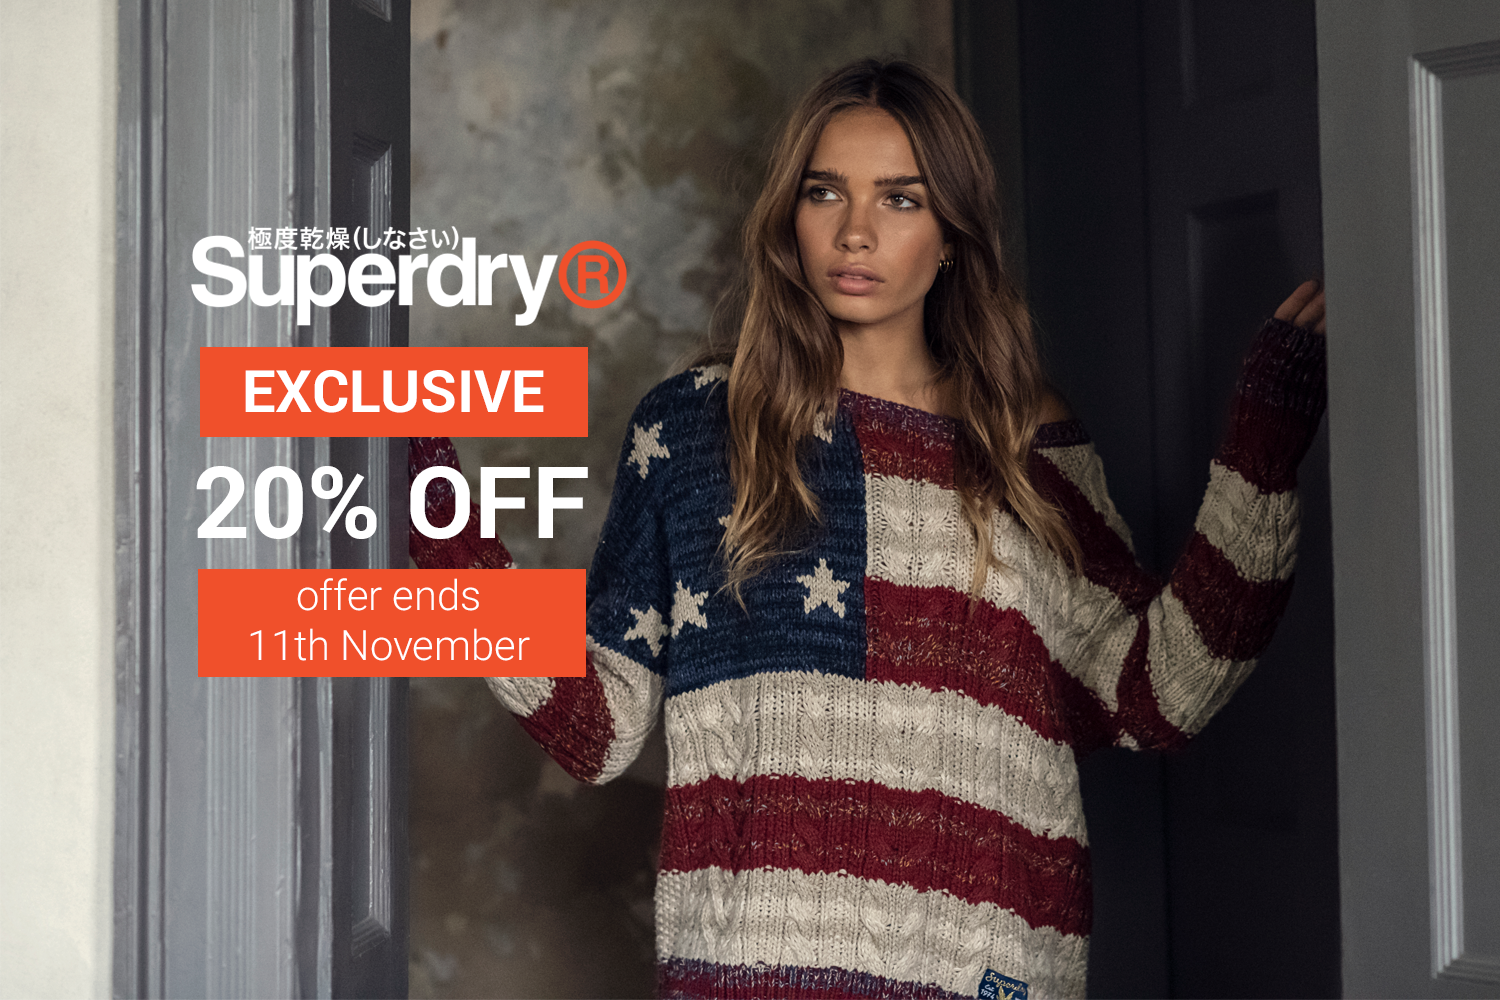 Exclusive offer with Superdry!